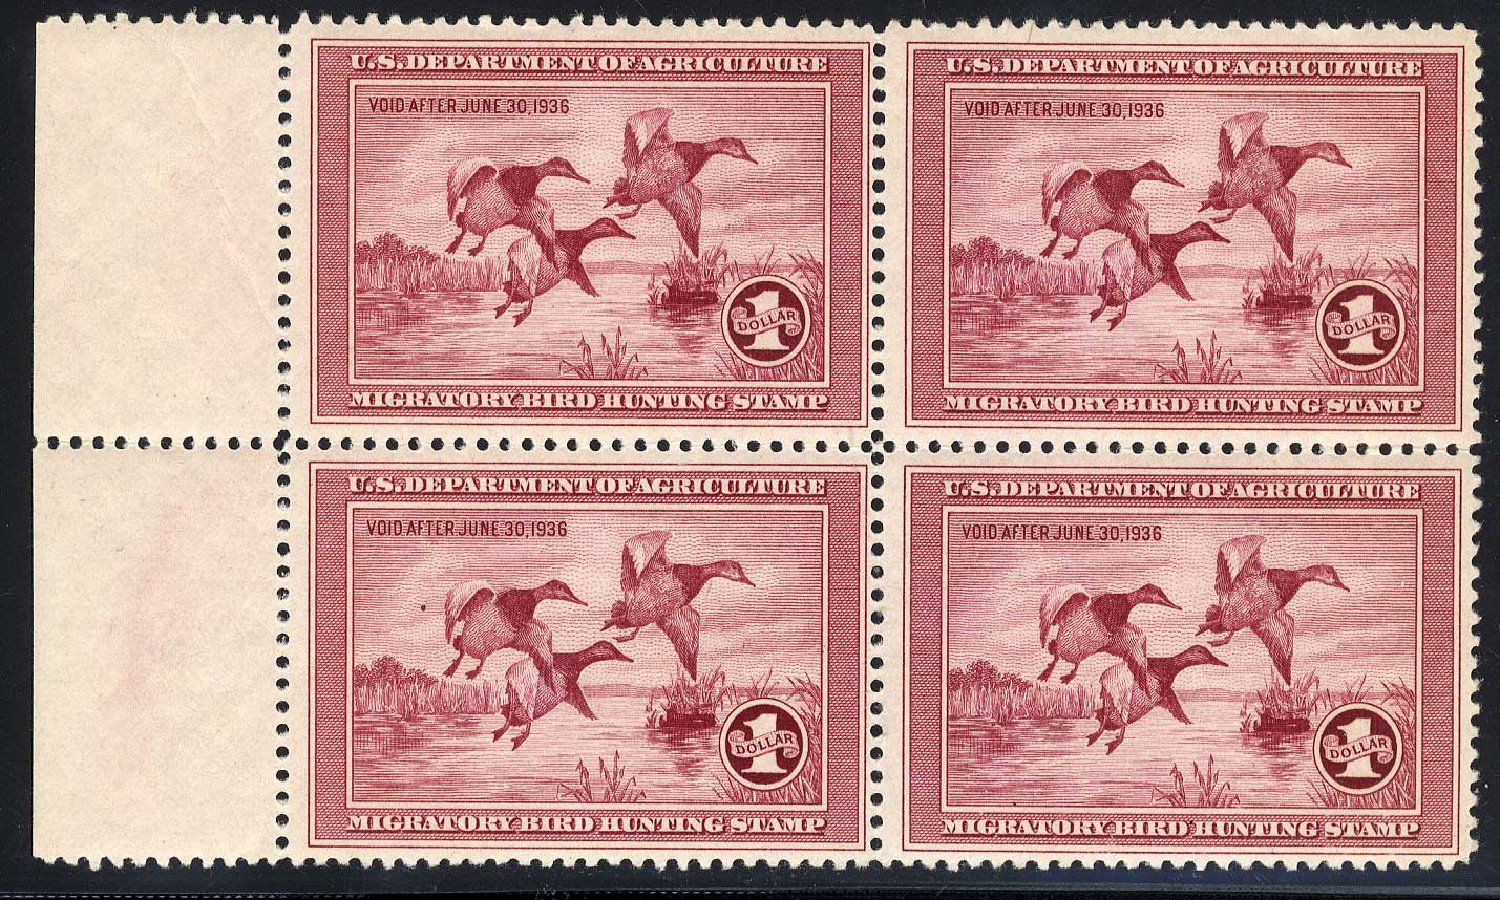 US Stamps Price Scott Catalog # RW2: 1935 US$1.00 Federal Duck Hunting. Cherrystone Auctions, Jul 2008, Sale 200807, Lot 93